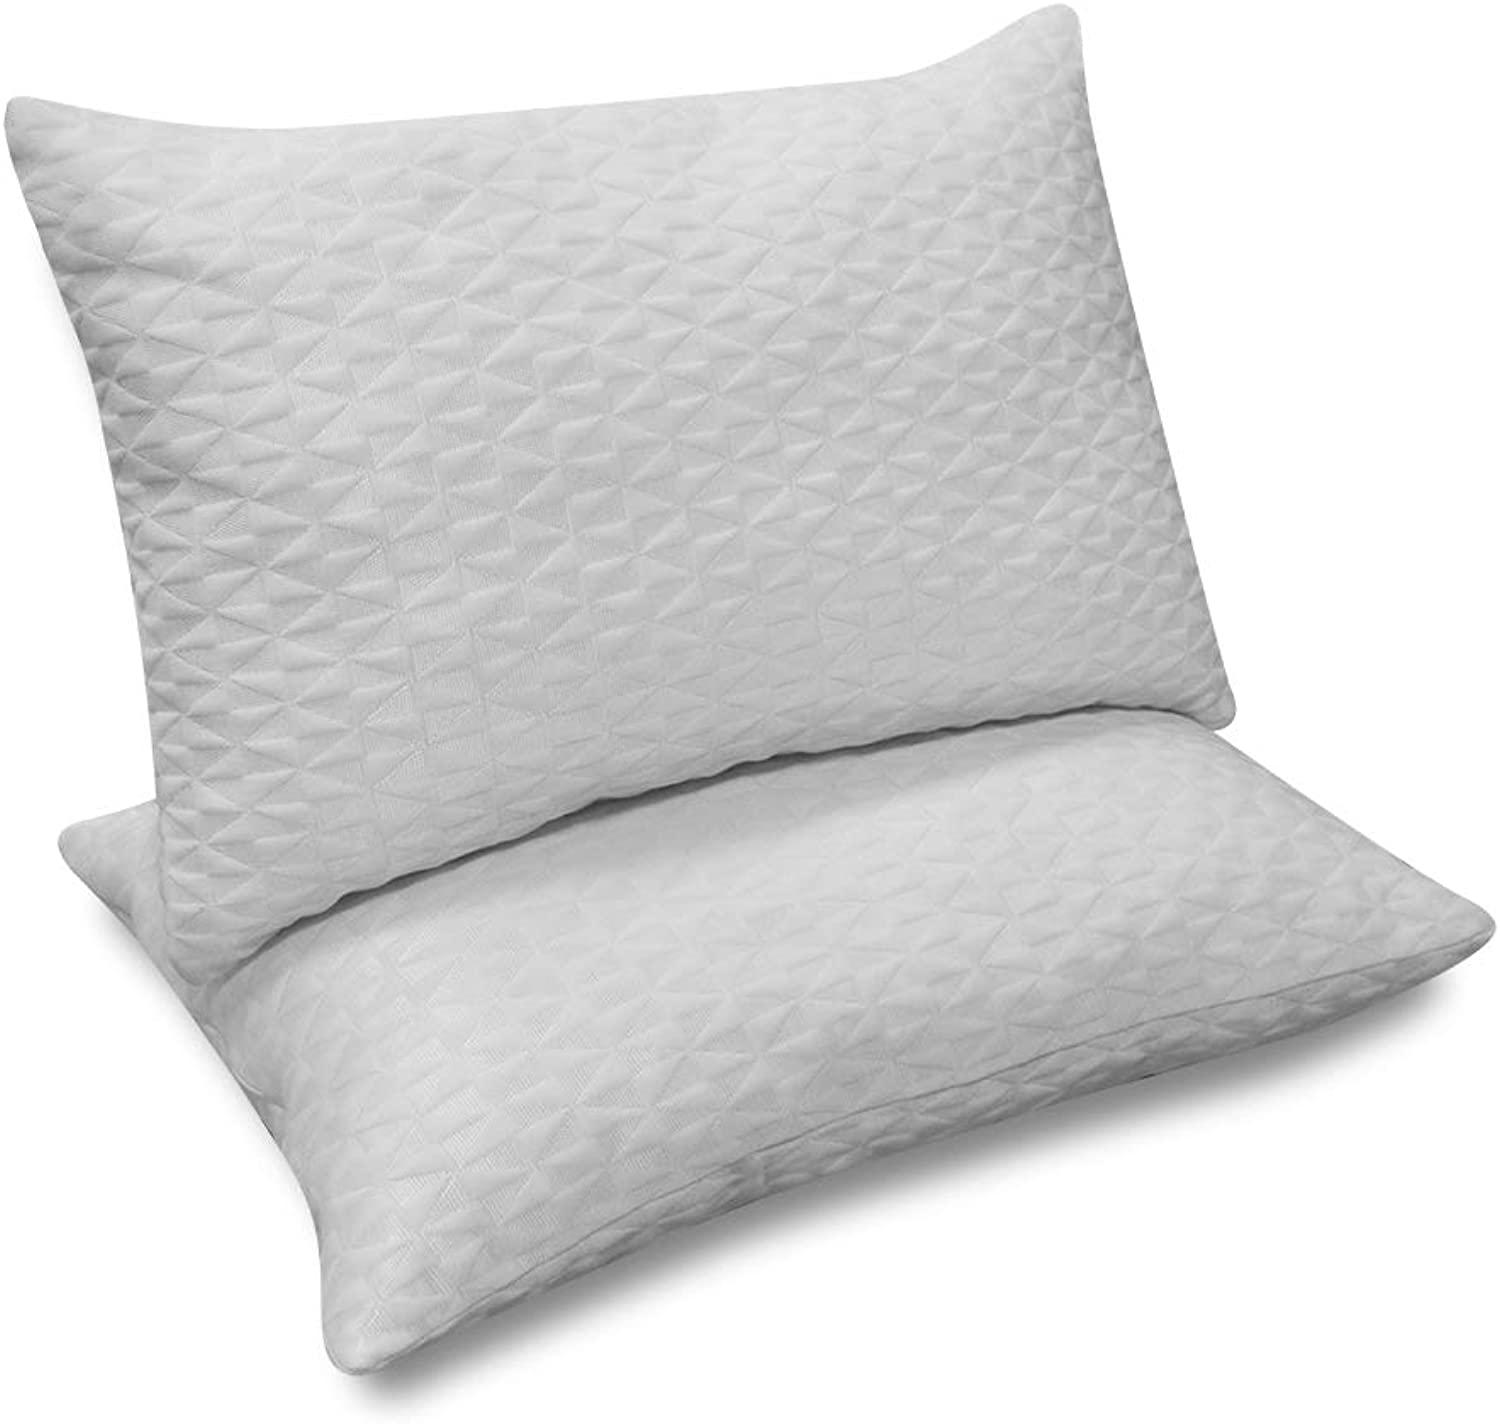 Arachnes Needle Memory Foam Pillow, Adjustable Soft Shredded Hypoallergenic Bamboo Pillow 2 Pieces with Washable Removable Cover-Queen